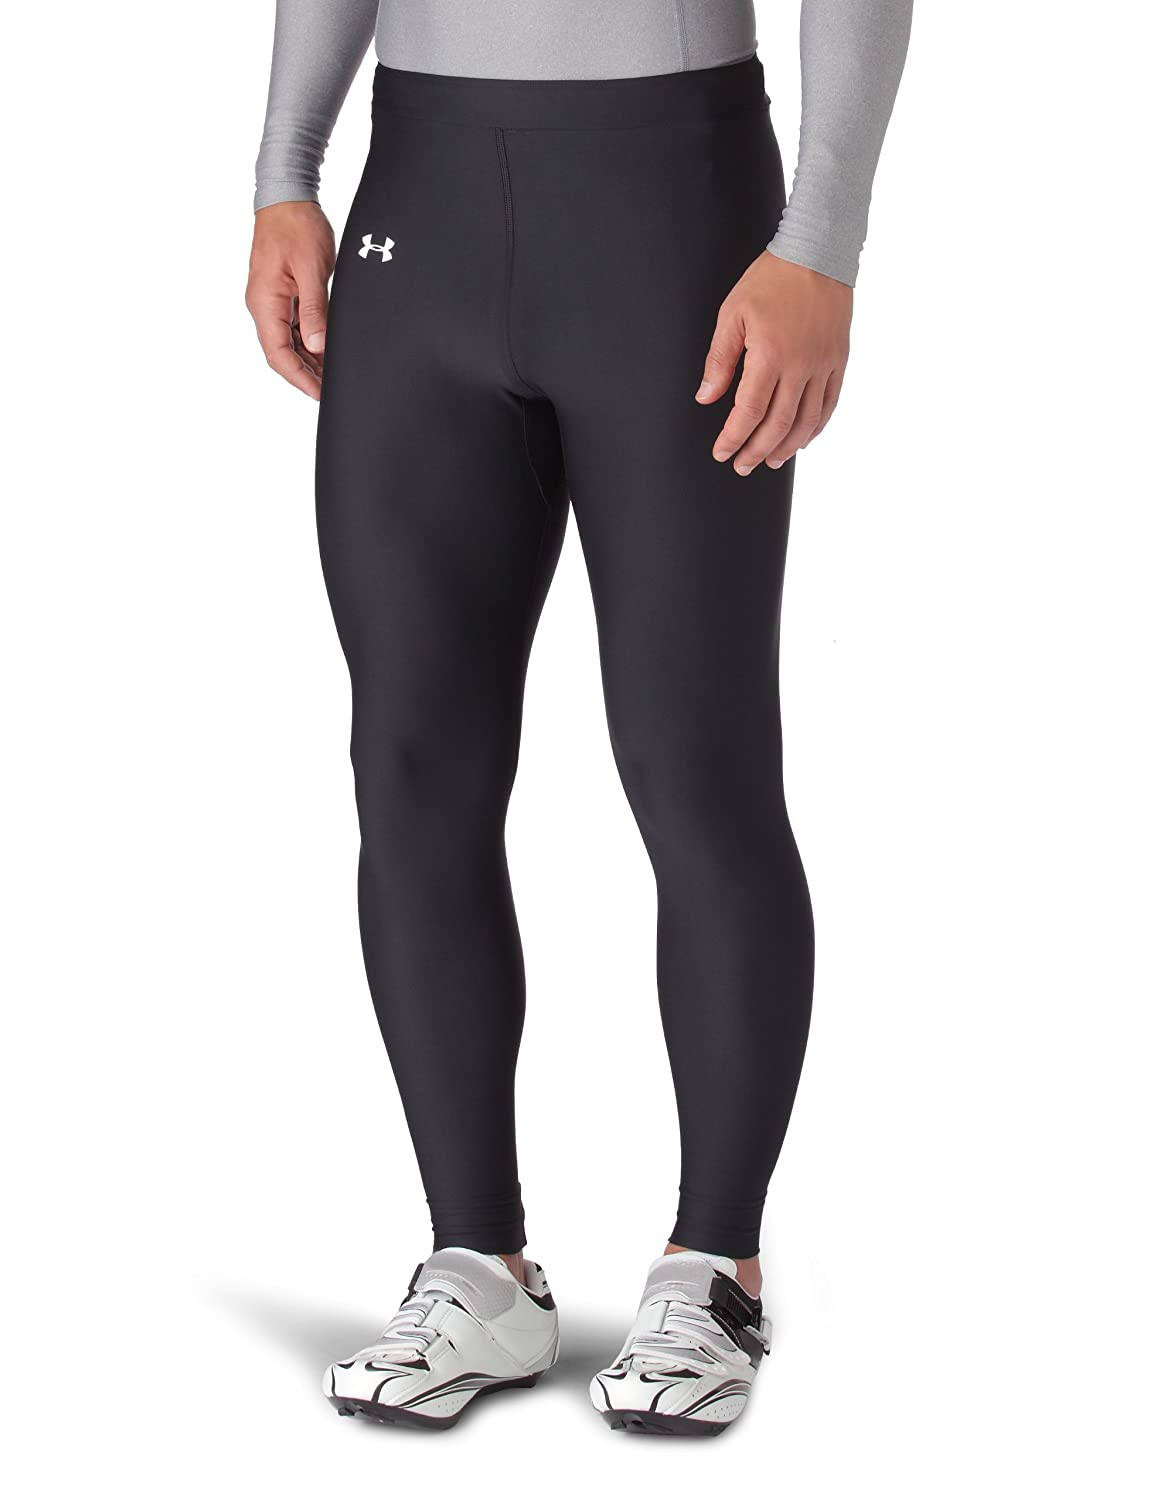 Under Armour EVO ColdGear Compession Tights - Small 1221714